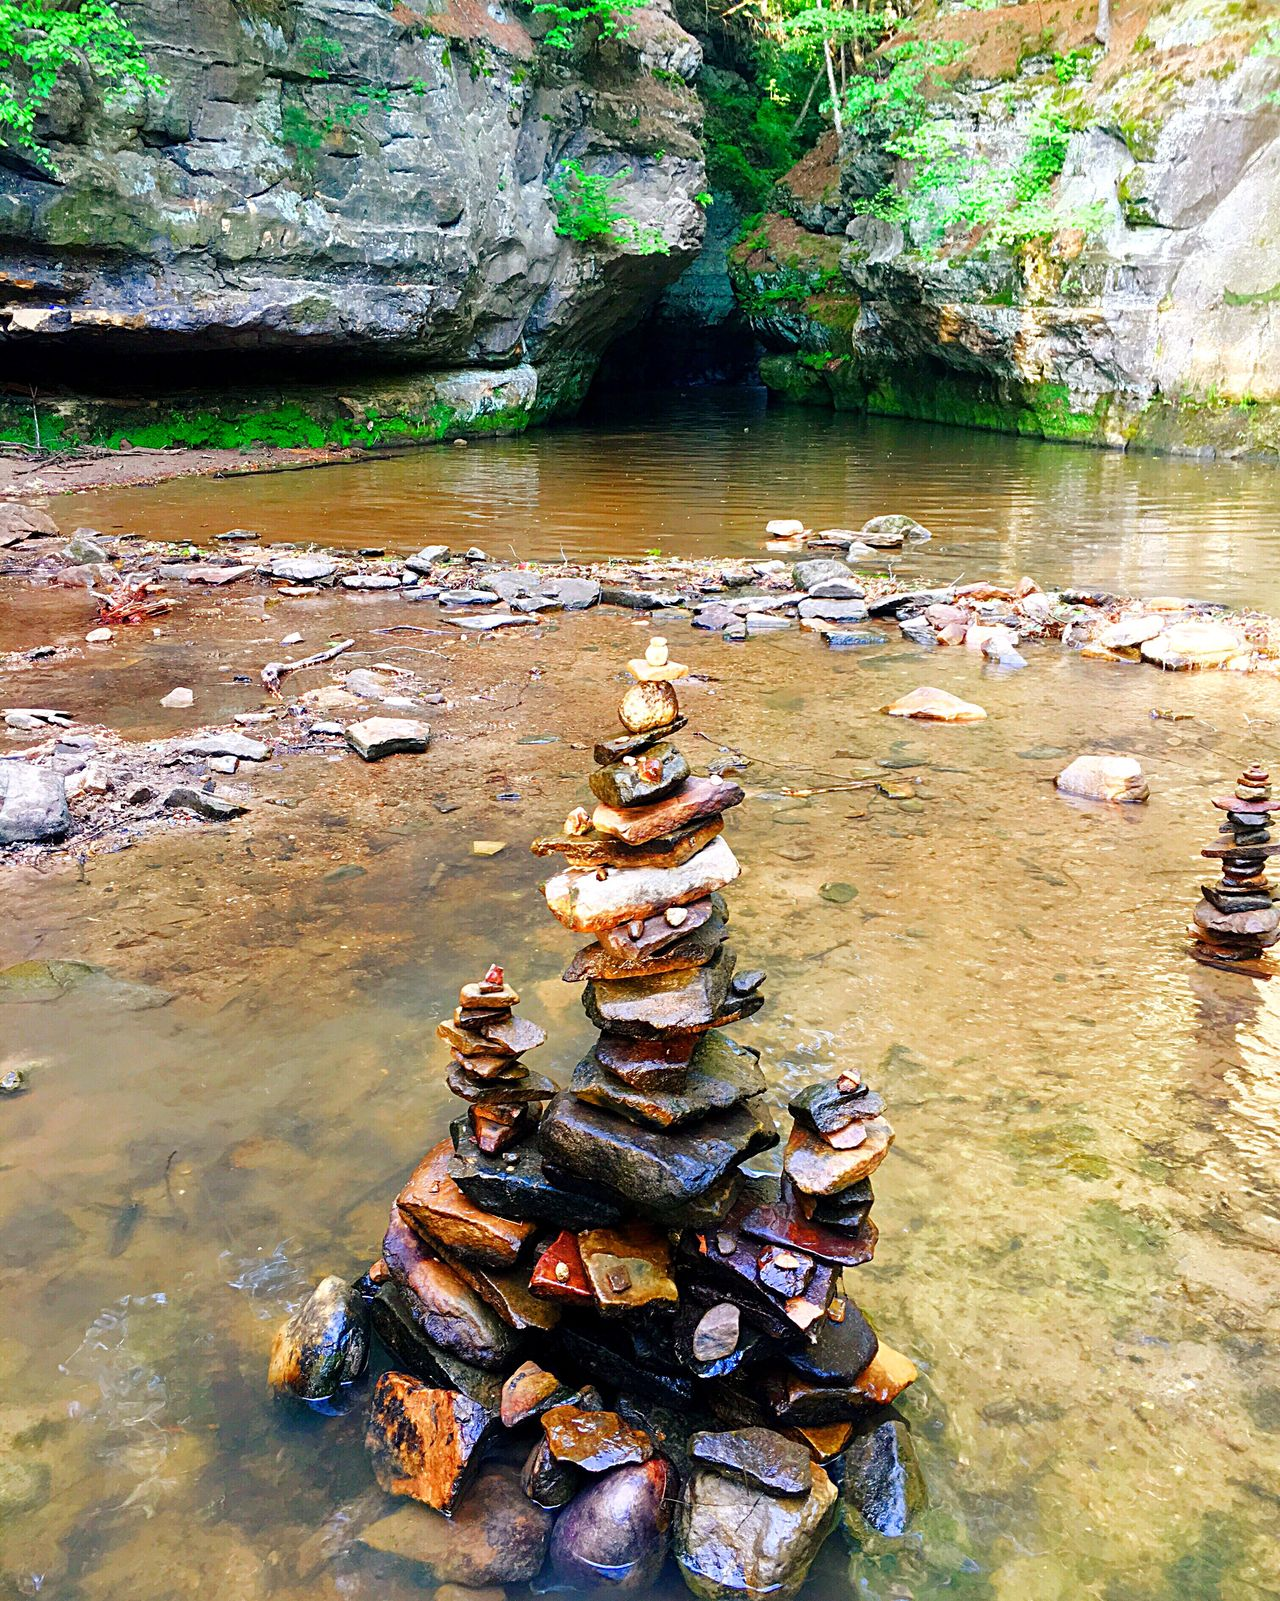 Stone stacking/Cairns Rock - Object Water Stonestacking Stone Stacking Stone Stack Natural Pool Colorful Stones Cairn Cairns Baraboo Baraboo Wi Pewits Nest Pewitsnest Live For The Story Place Of Heart The Great Outdoors - 2017 EyeEm Awards